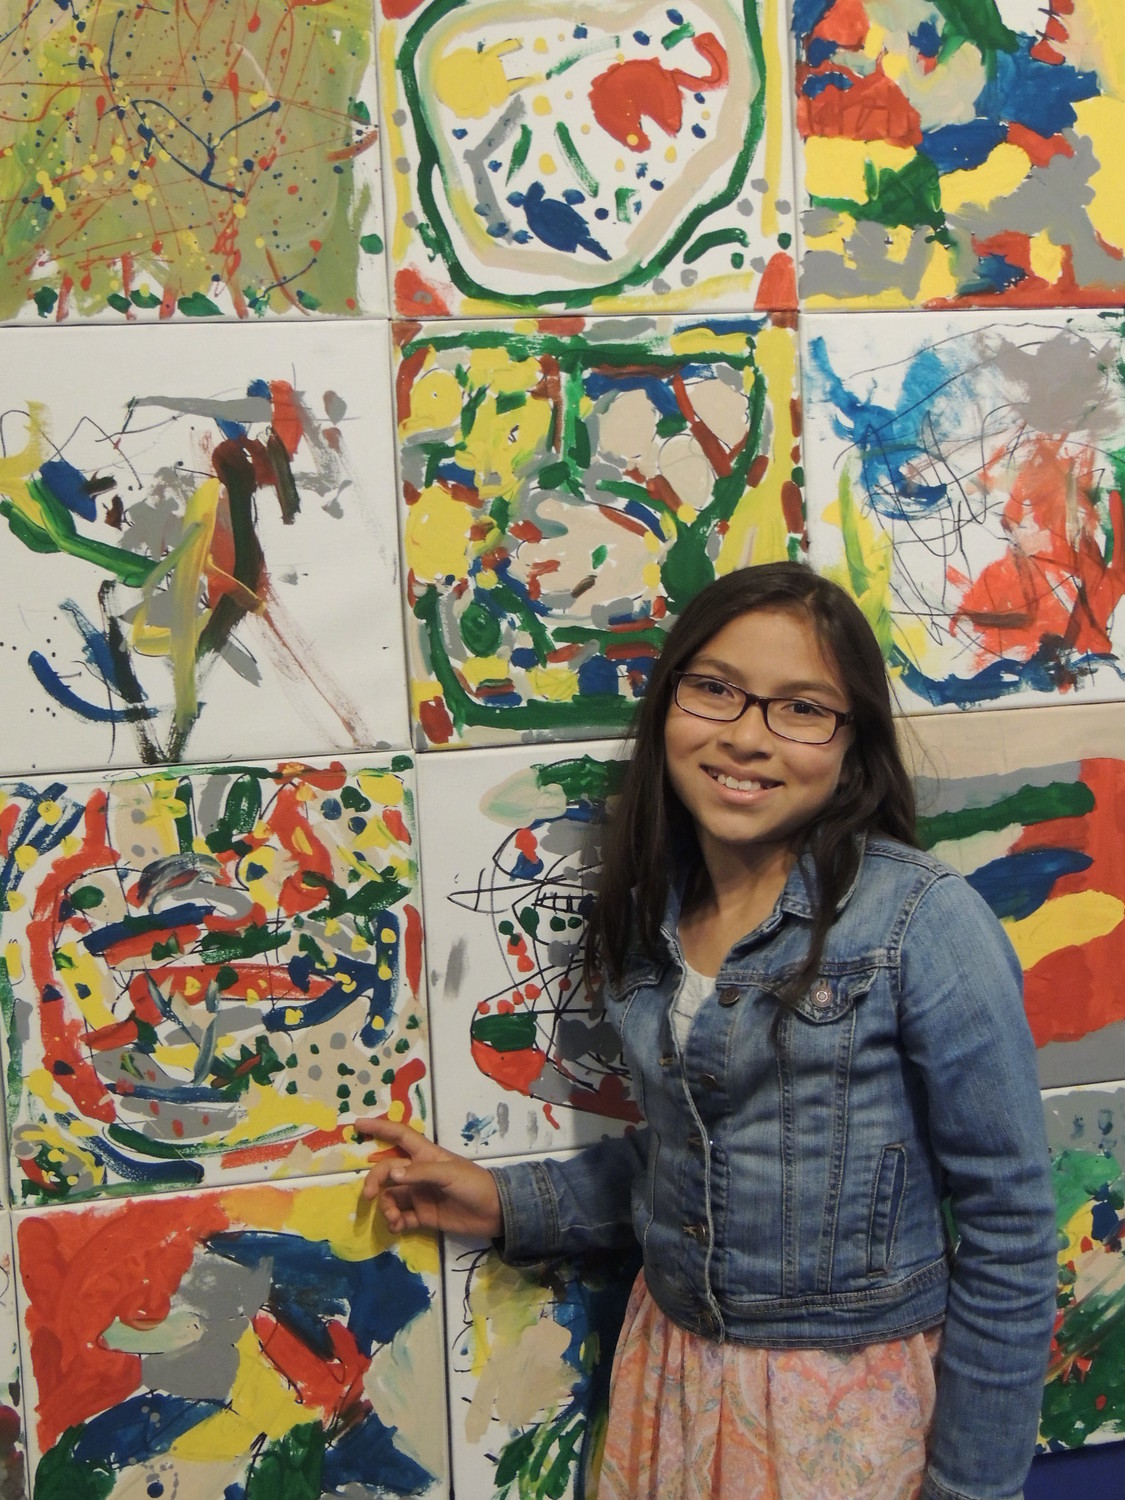 Teens create abstract art as part of the de Kooning initiative during sessions held in libraries across Nassau County.